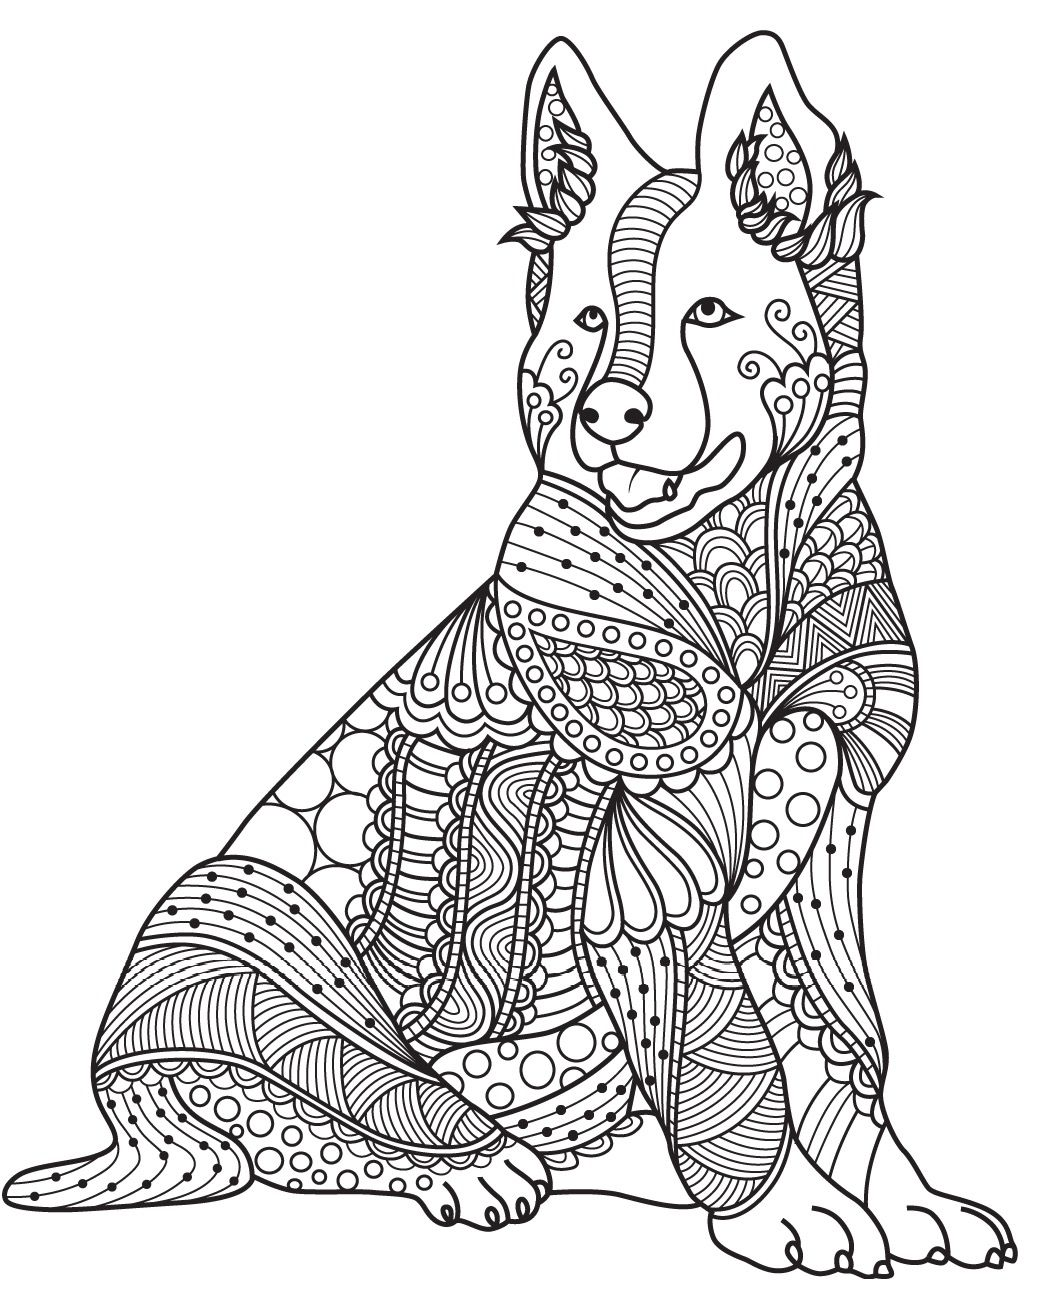 Dog Pictures To Color For Adults